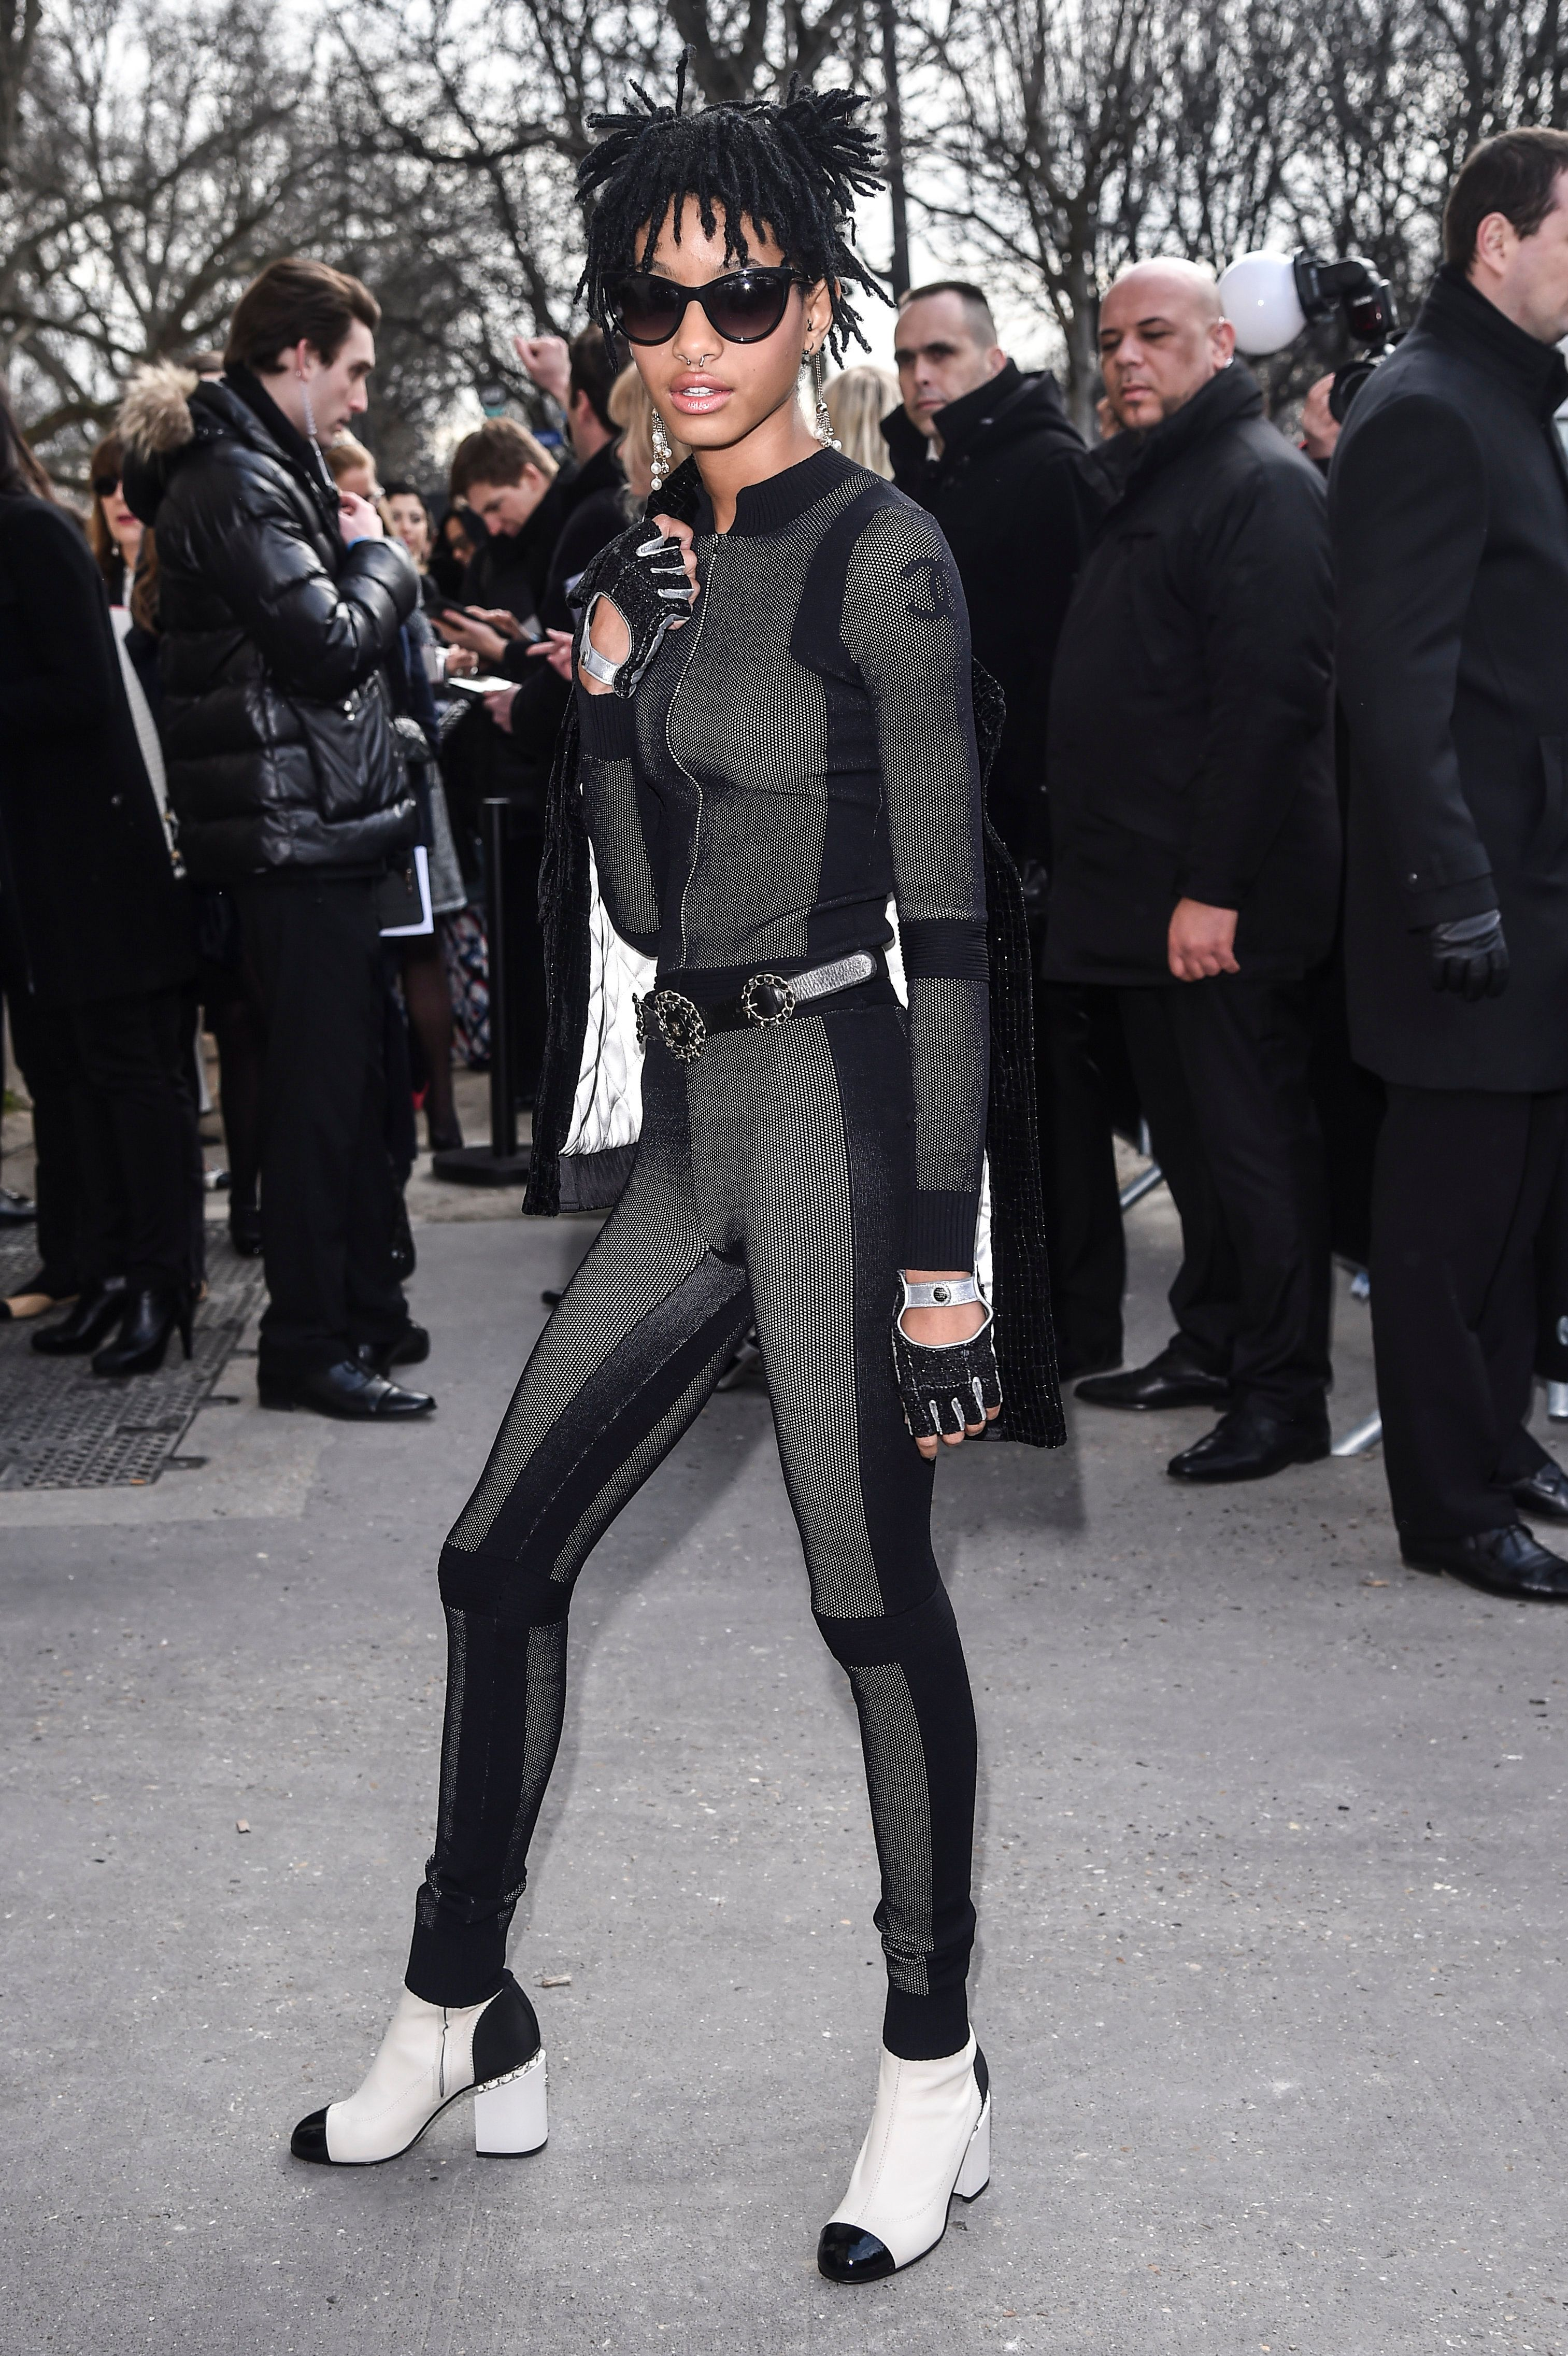 PARIS, FRANCE - MARCH 08:  Willow Smith is seen arriving at Chanel Fashion show during Paris Fashion Week : Womenswear Fall Winter 2016/2017 on March 8, 2016 in Paris, France.  (Photo by Jacopo Raule/GC Images)